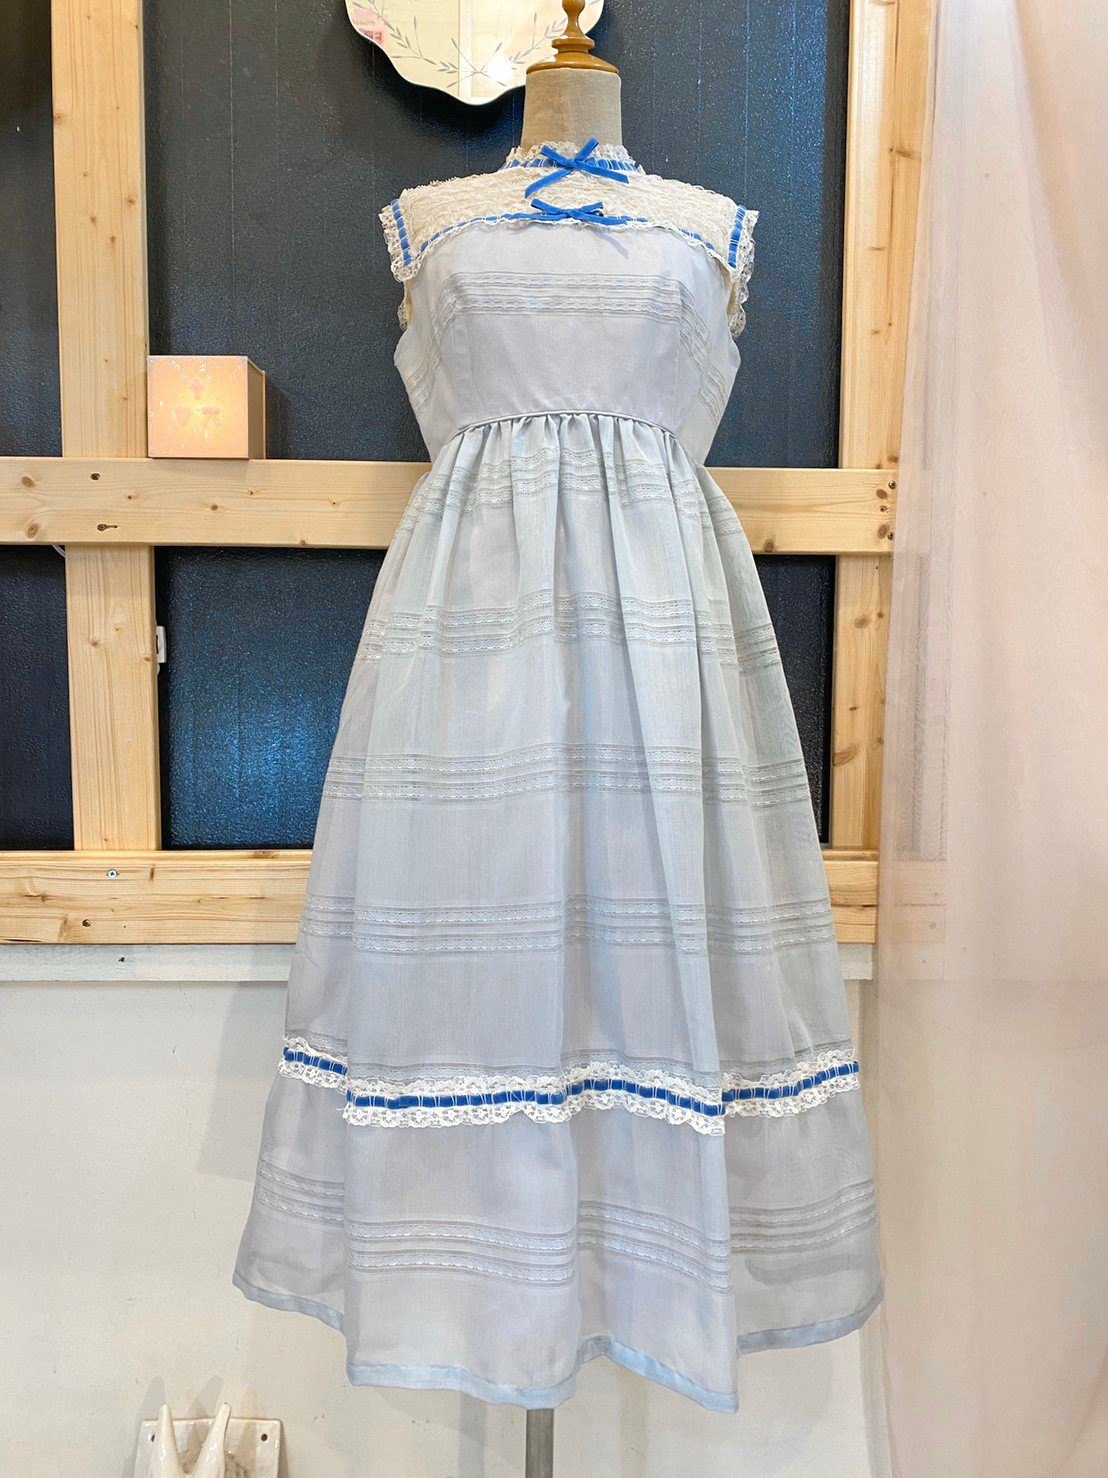 47.sheer blue vintage dress